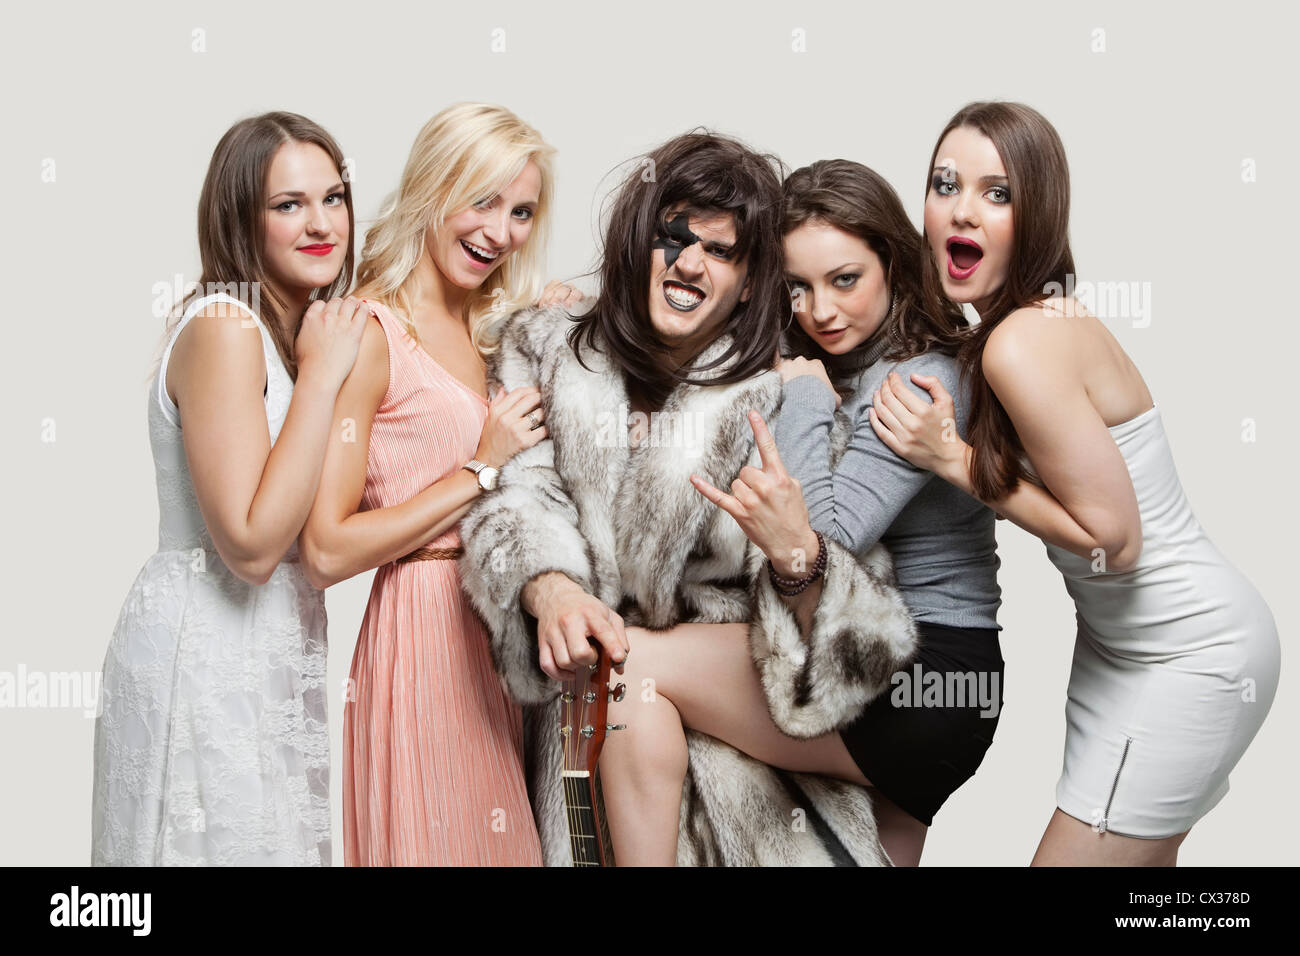 Young playboy with hand gesture amid happy women over gray background - Stock Image